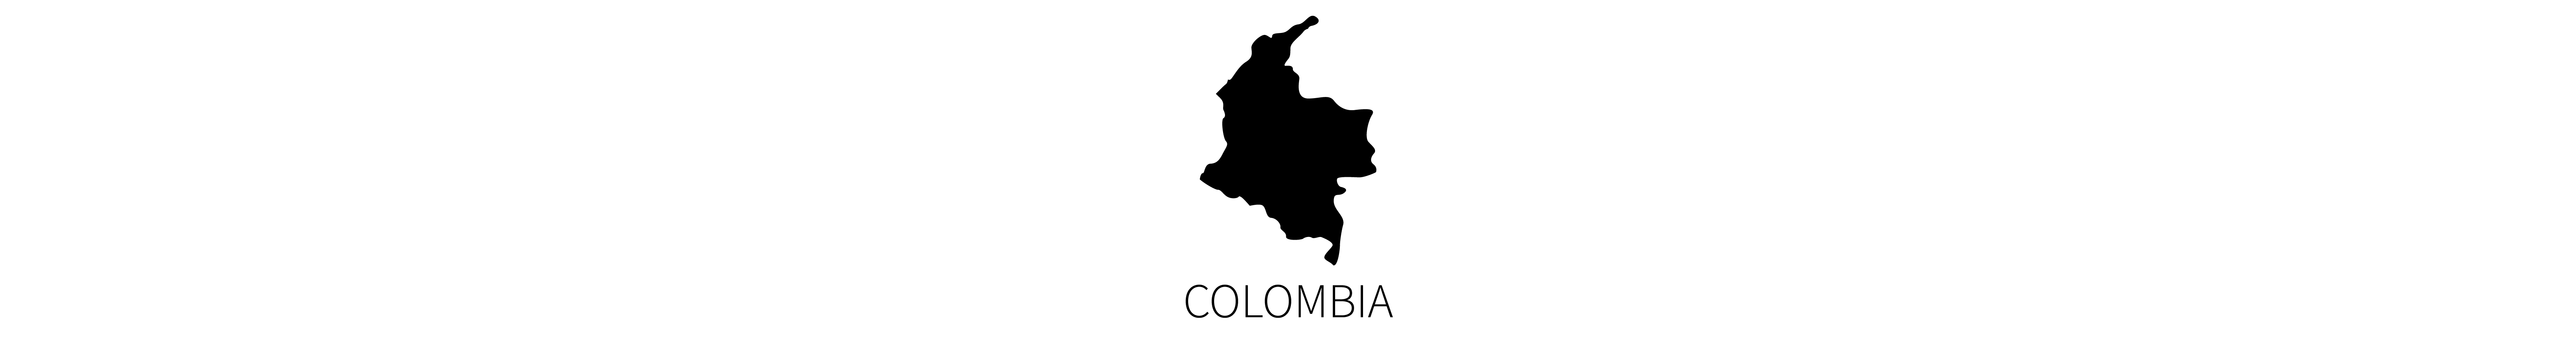 This image contains the black map silhouette of the country of Colombia with identifying all-caps text below.